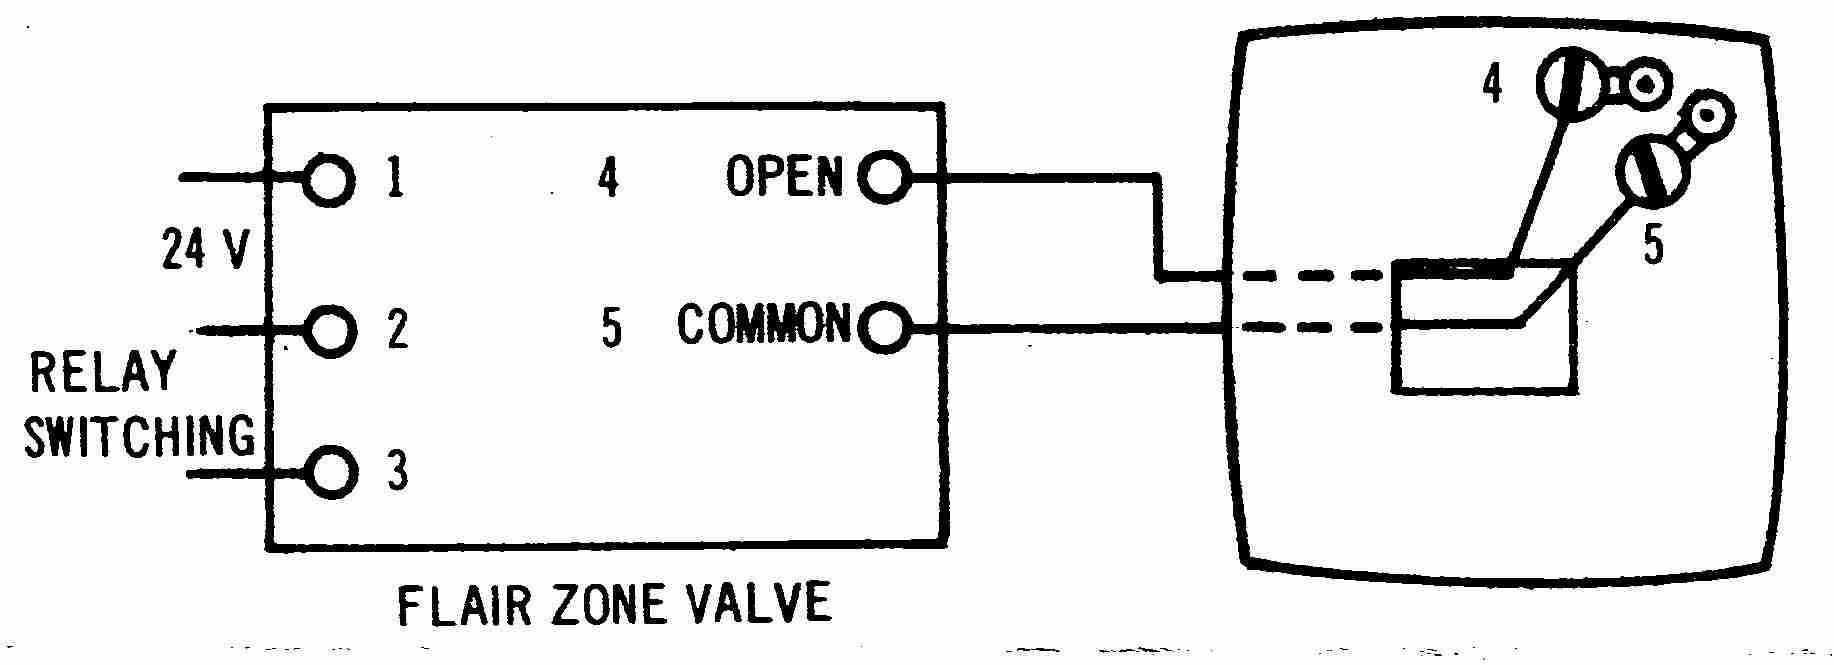 honeywell electric heat thermostat wiring diagram